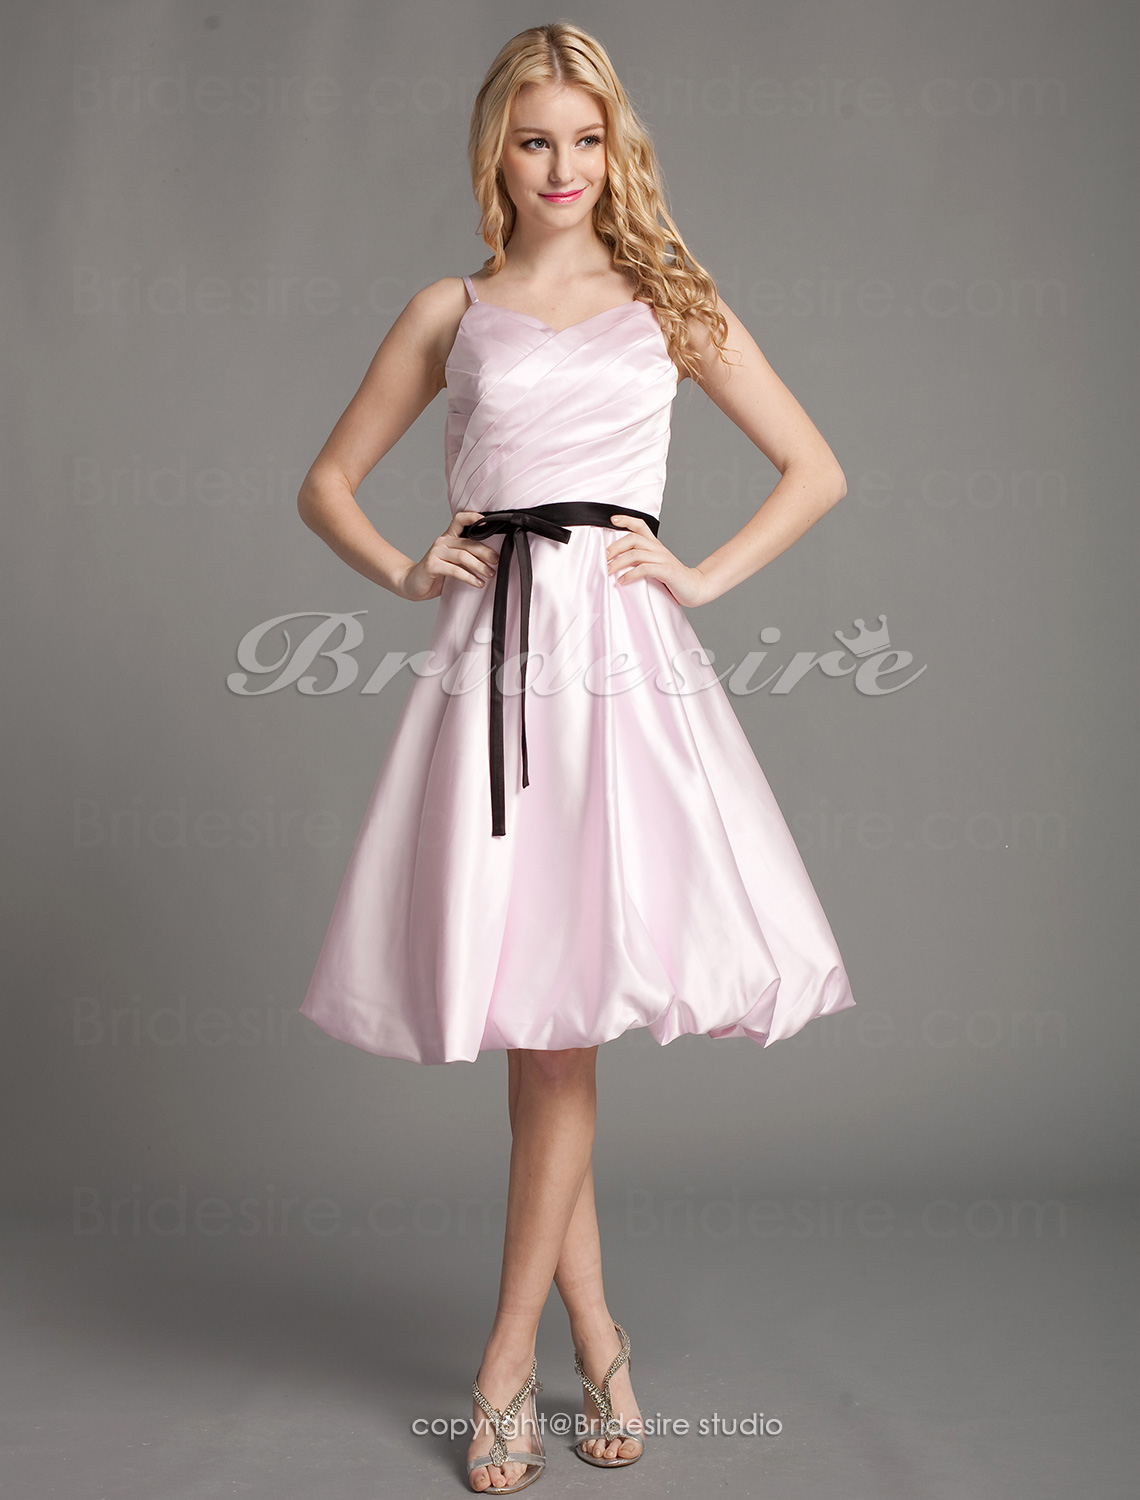 A-line Satin Knee-length Spaghetti Straps Bridesmaid Dress